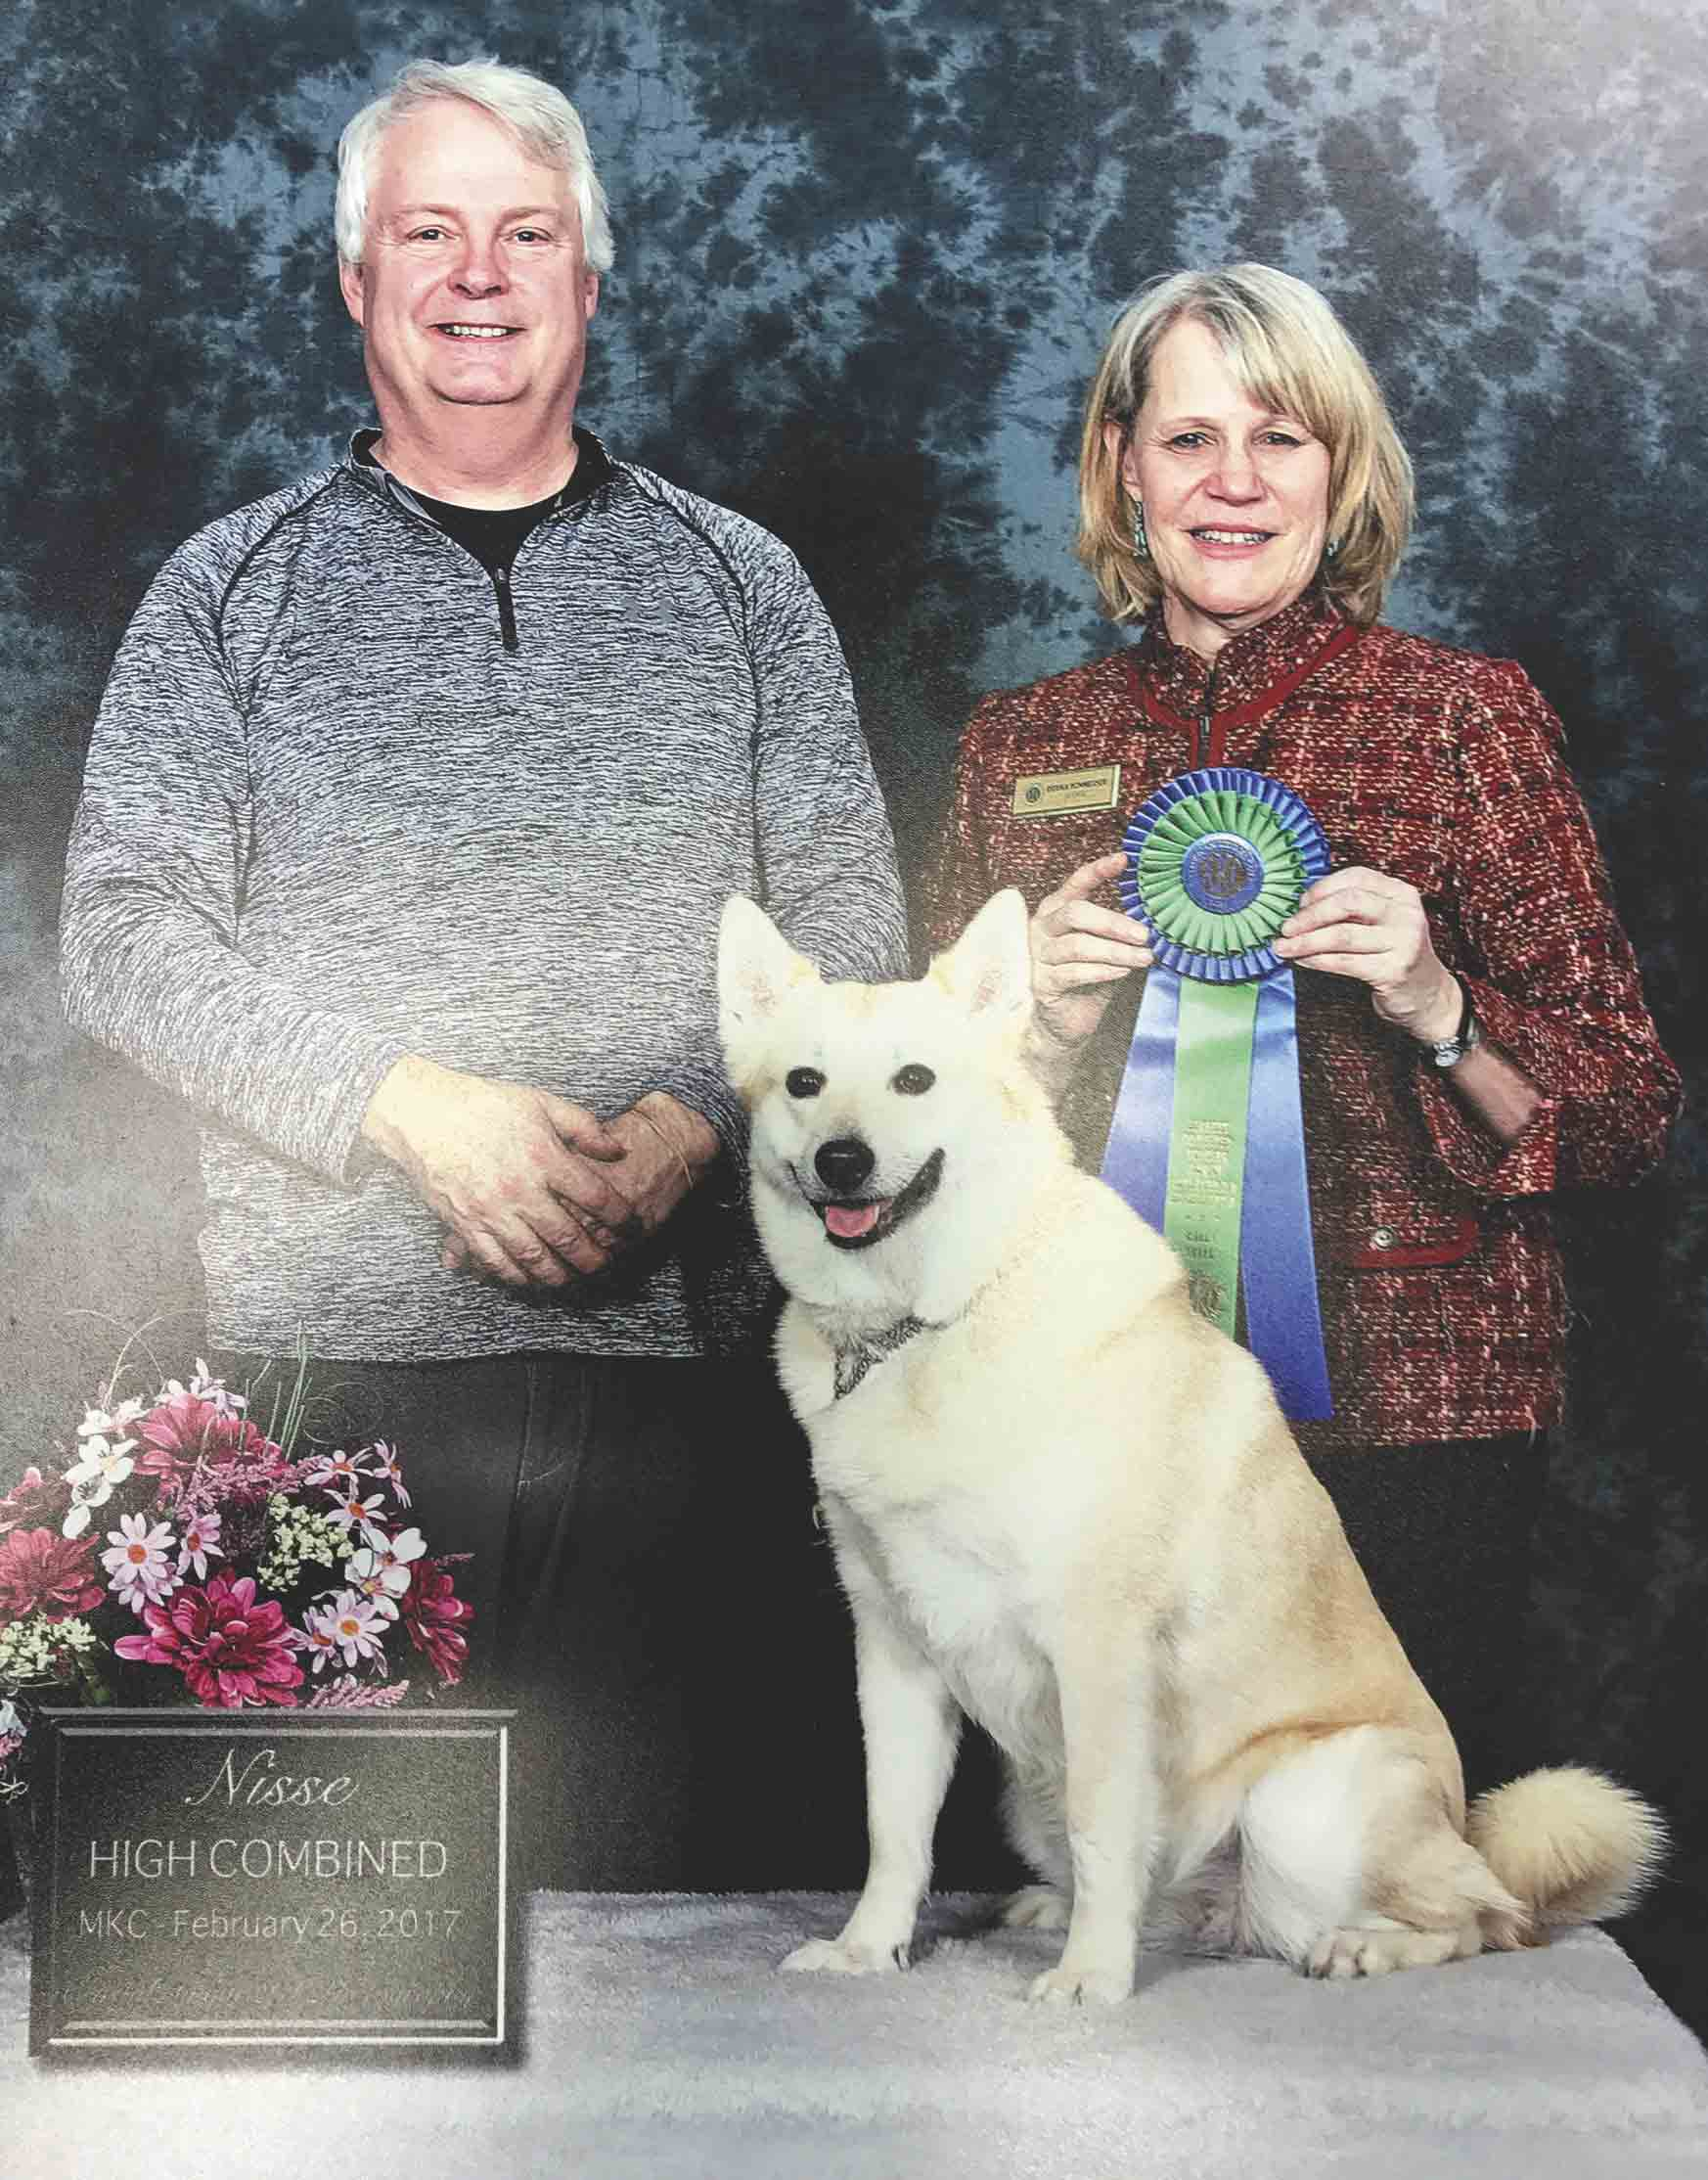 Mike Woodson's dog, Nisse, received the High Combined award at a dog show on Feb. 26, 2017. Nisse is the first Norwegian buhund to receive this distinction in the United States. Woodson shows Nisse and four other dogs at show competitions across the Midwest. It is a hobby he takes...